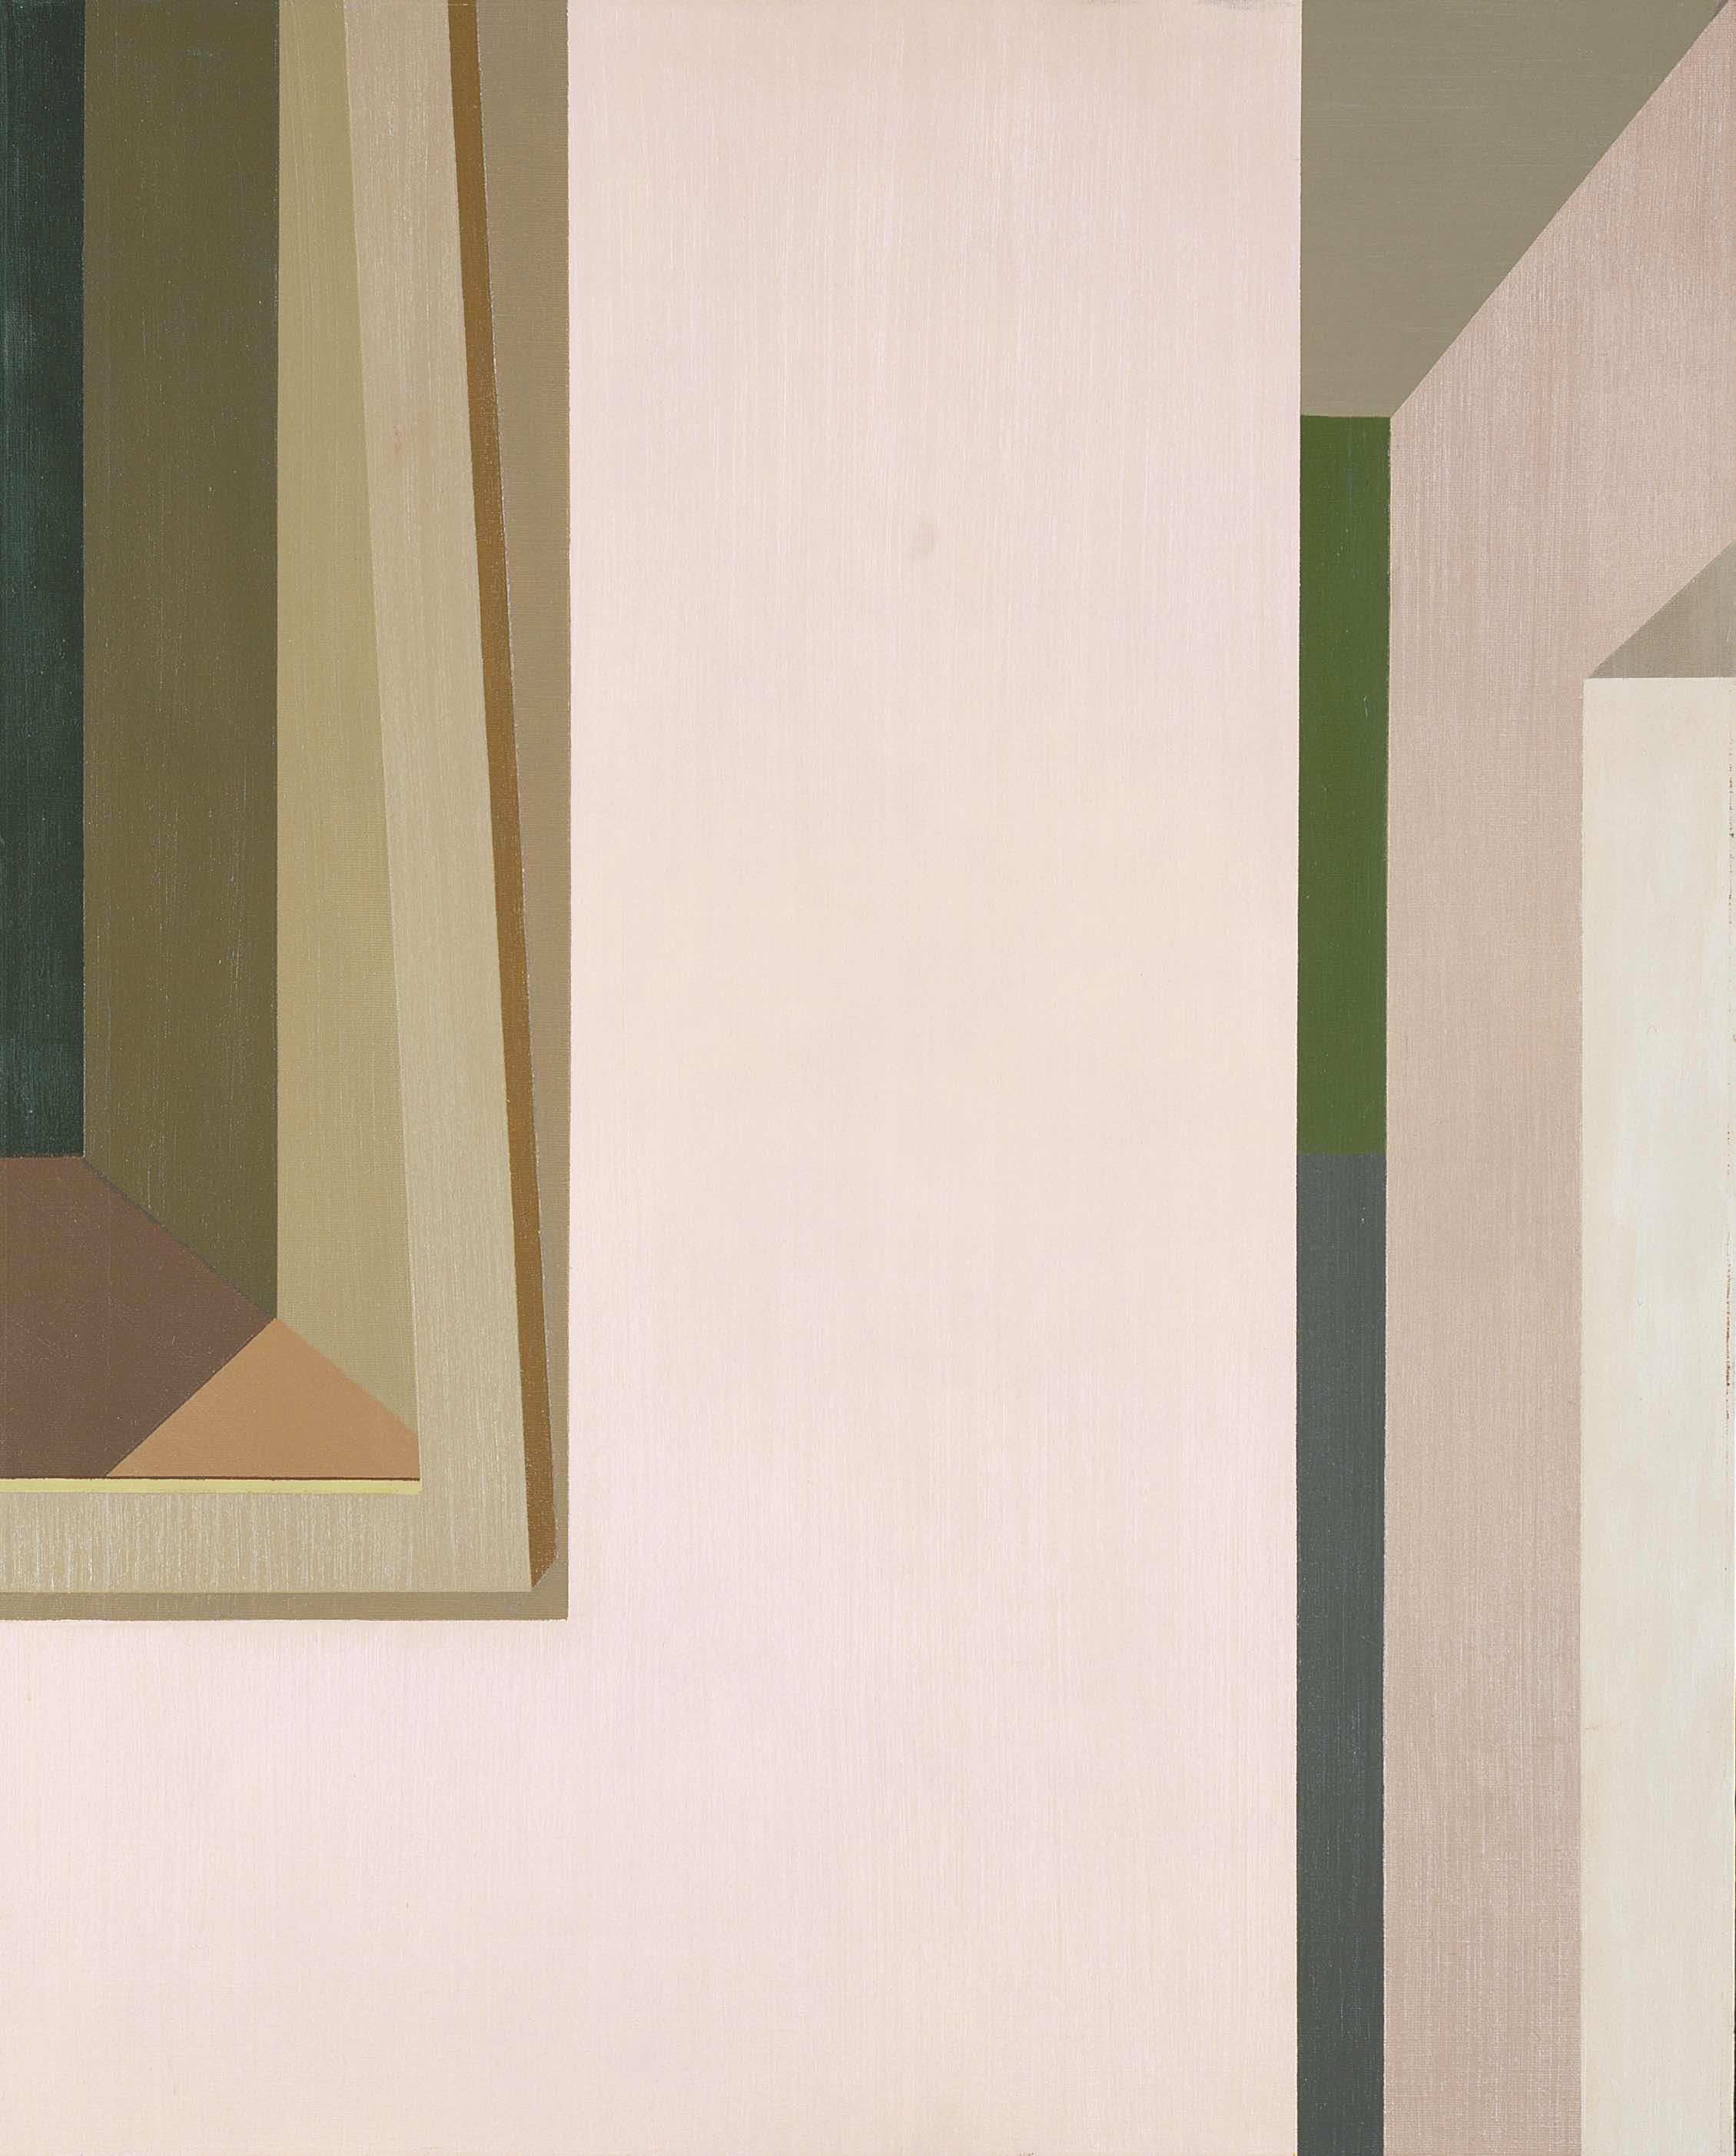 Untitled (Interior with Doorway) , 1962  oil on canvas 30 x 24 inches; 76.2 x 61 centimeters